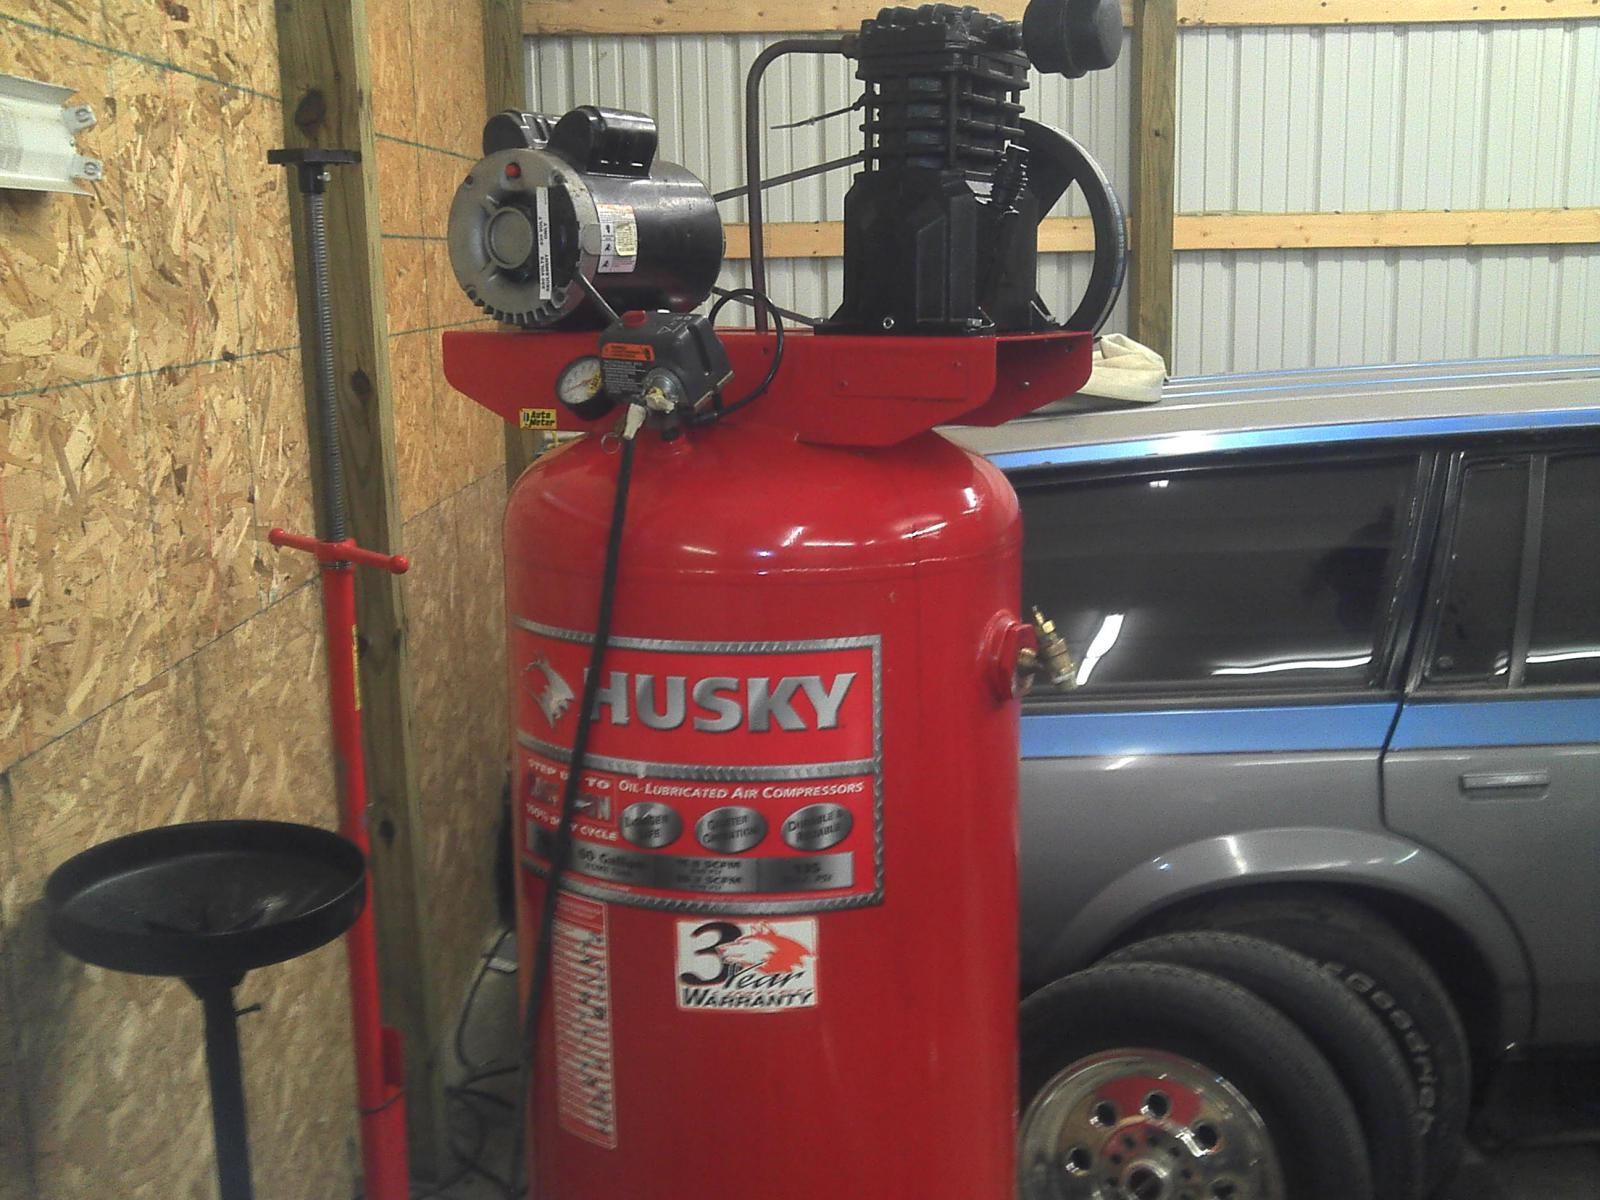 Husky+60+Gallon+Air+Compressor have a 60 gallon Husky compressor 240